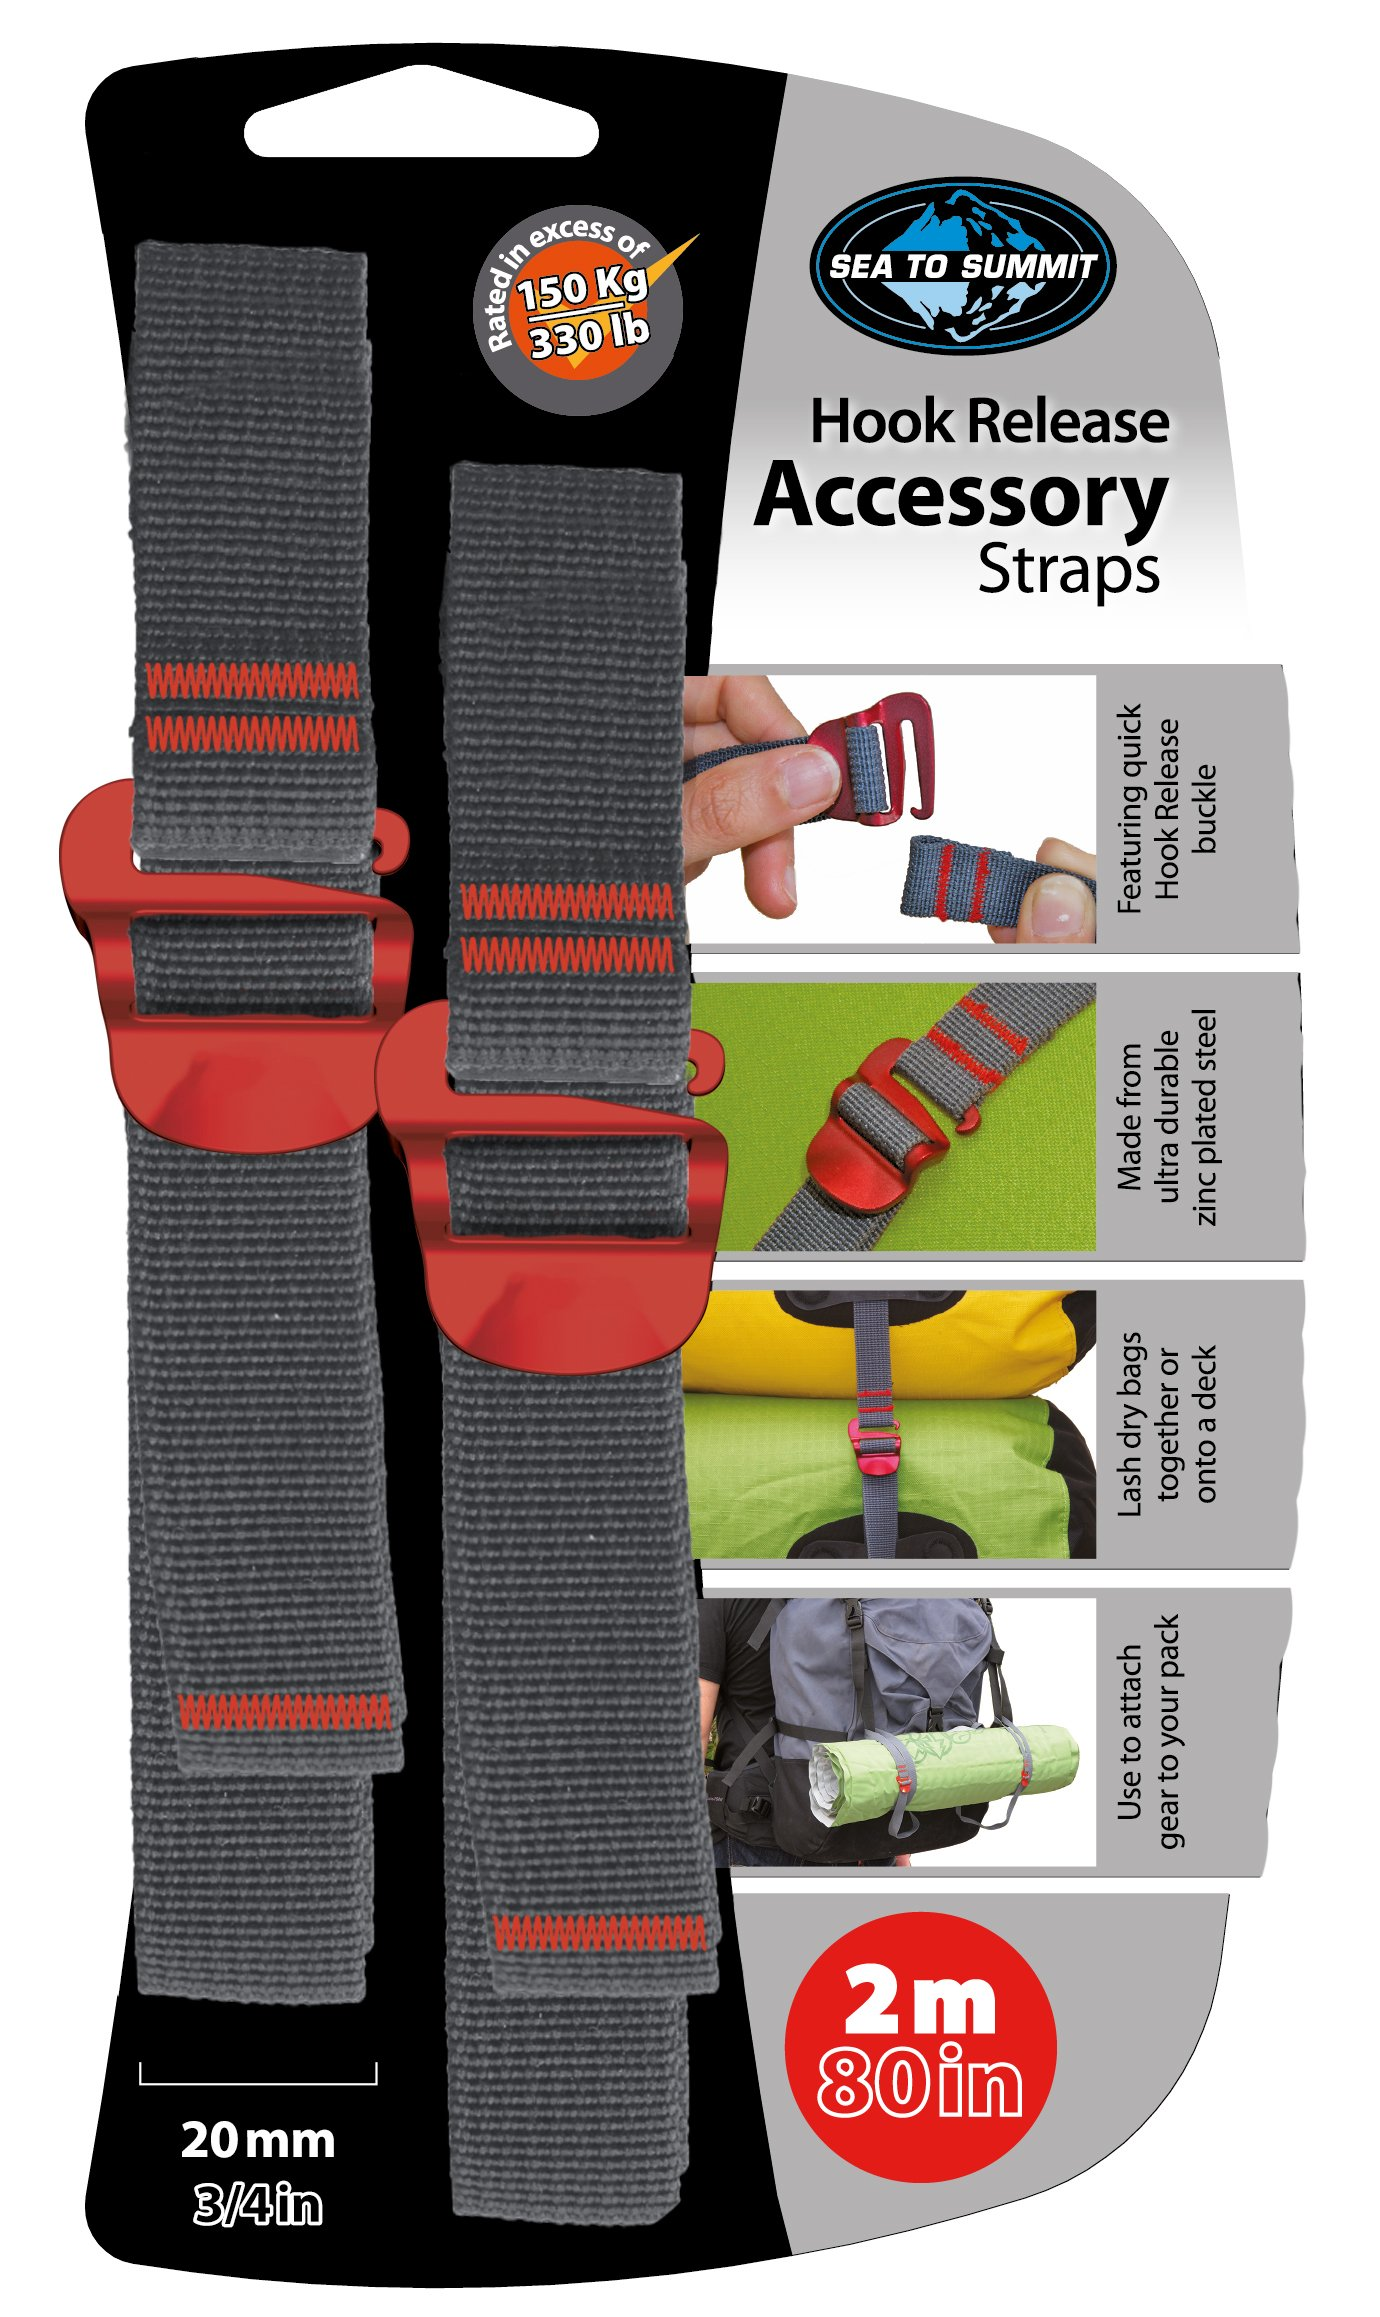 Sea to Summit Accessory Strap with Hook Release - pair (20MM / 3/4'' Webbing by 2M Long) - Color May Vary